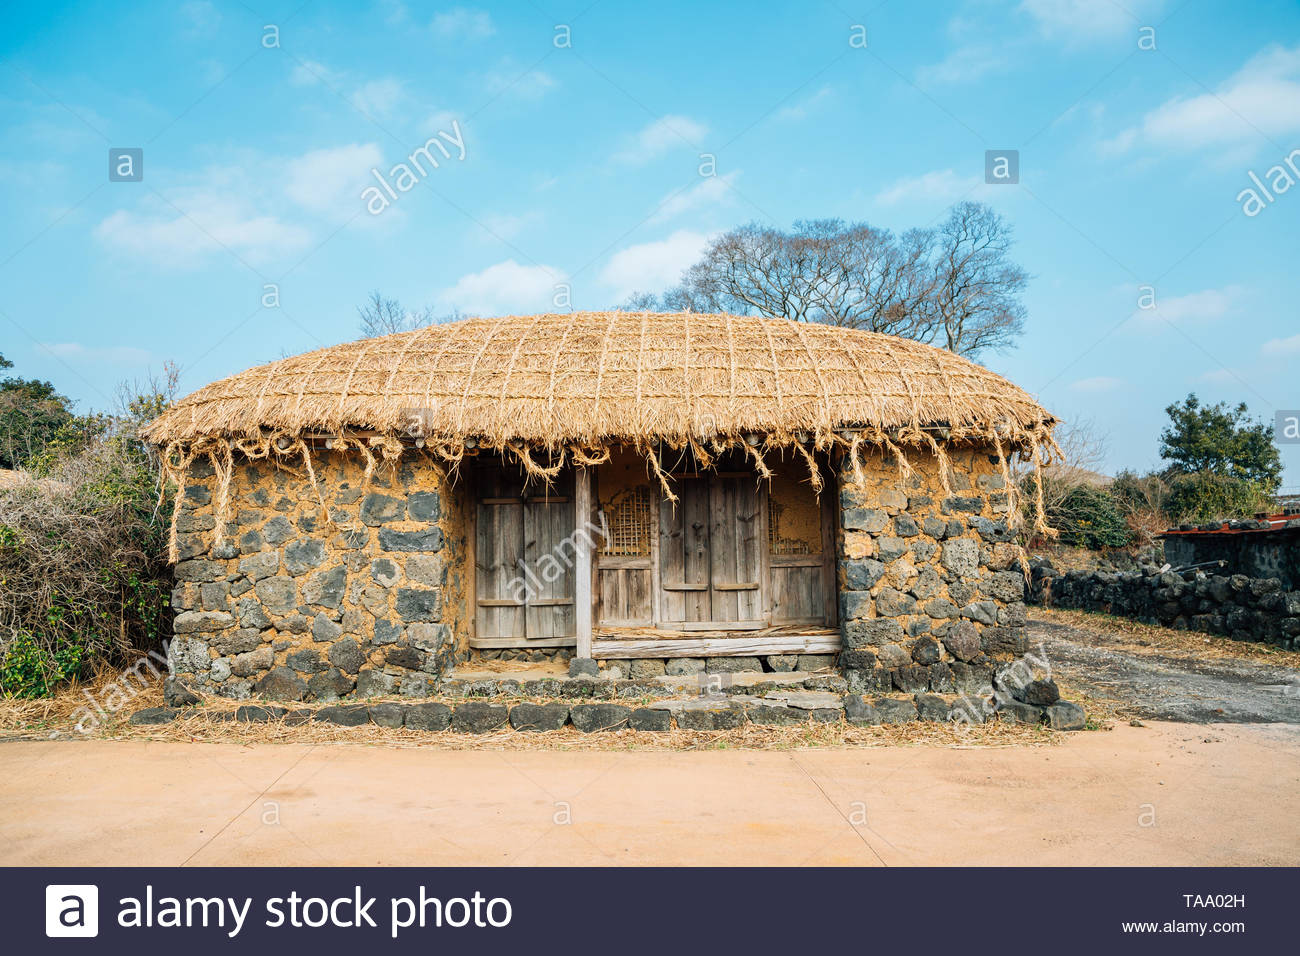 Seongeup Folk Village, Korean traditional house in Jeju Island, Korea - Stock Image